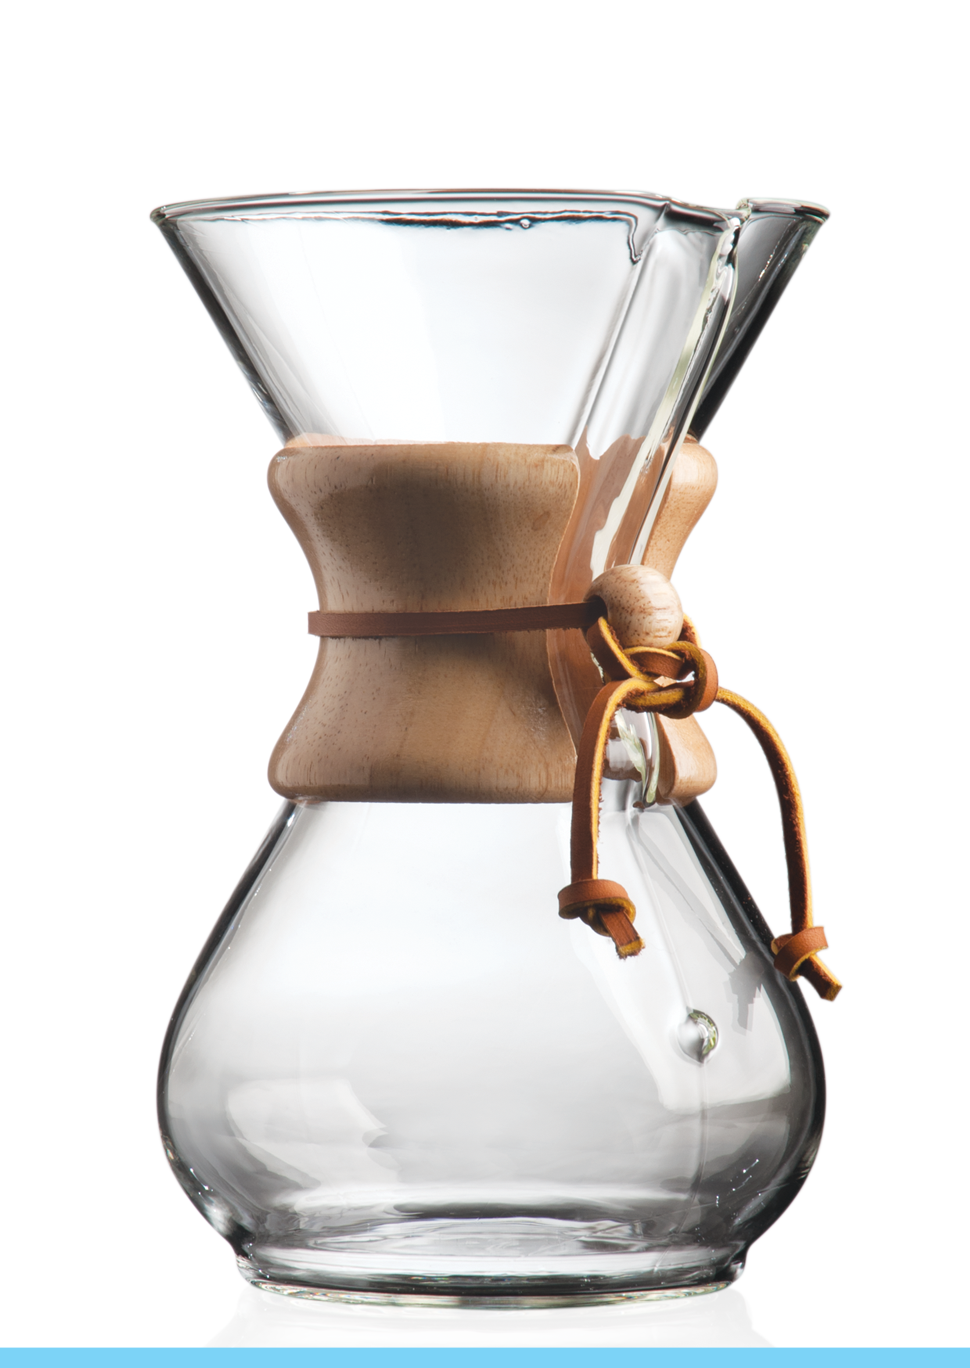 How To Use The Chemex Coffee Maker : Chemex - The Classic Series - Barista HK